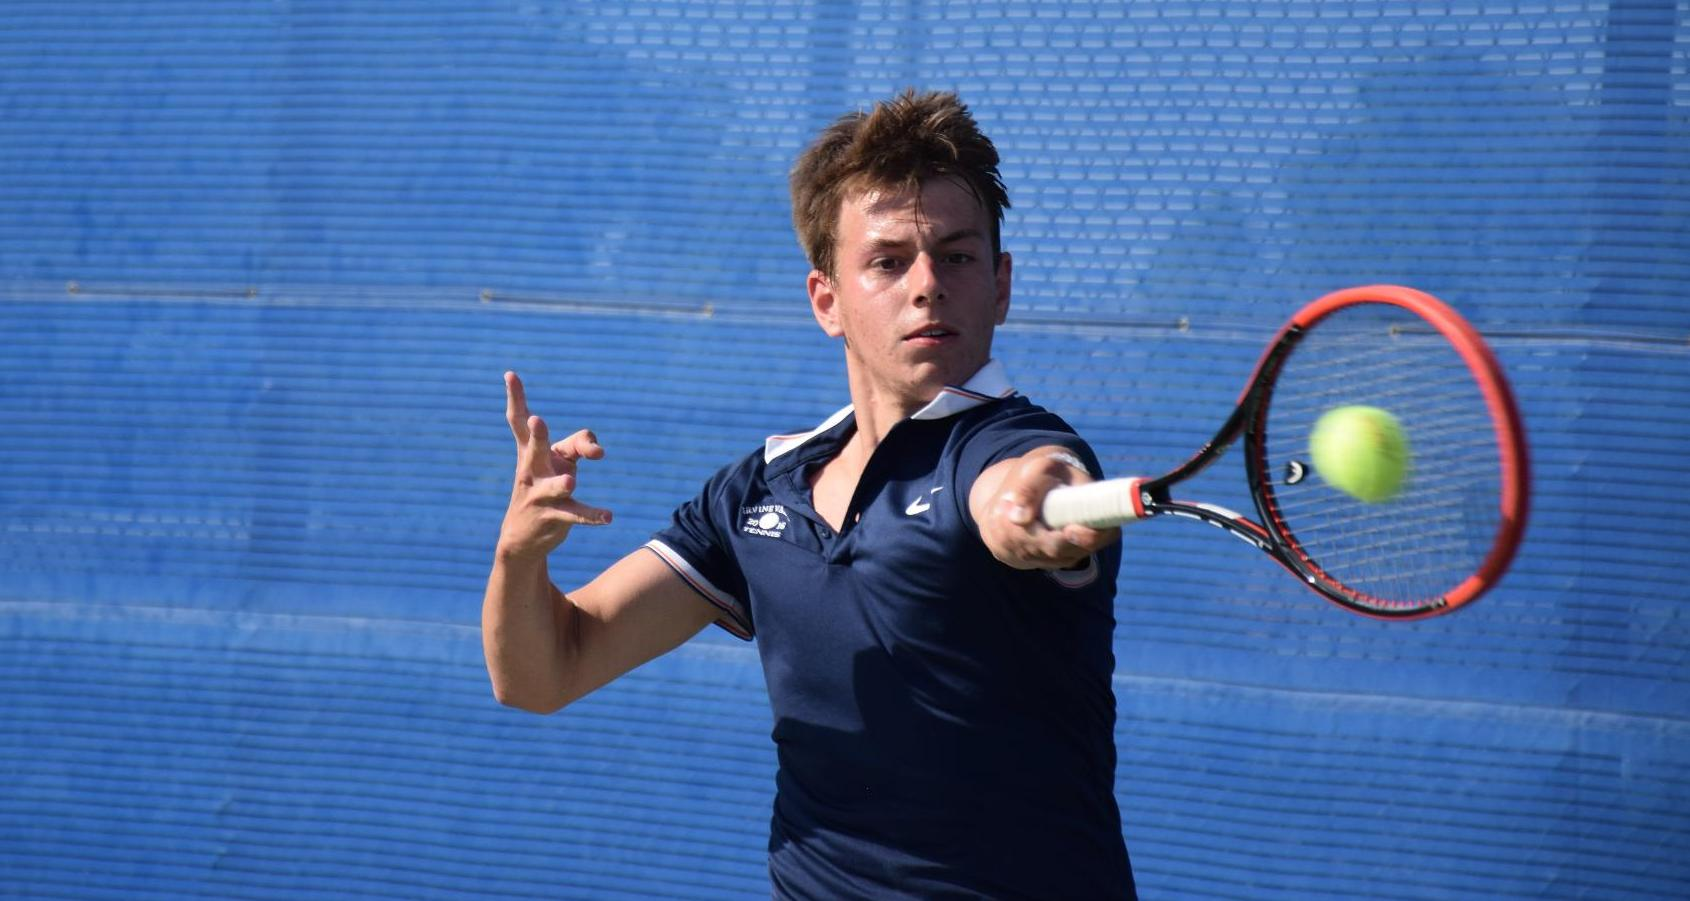 Men's and women's tennis teams both home for playoffs